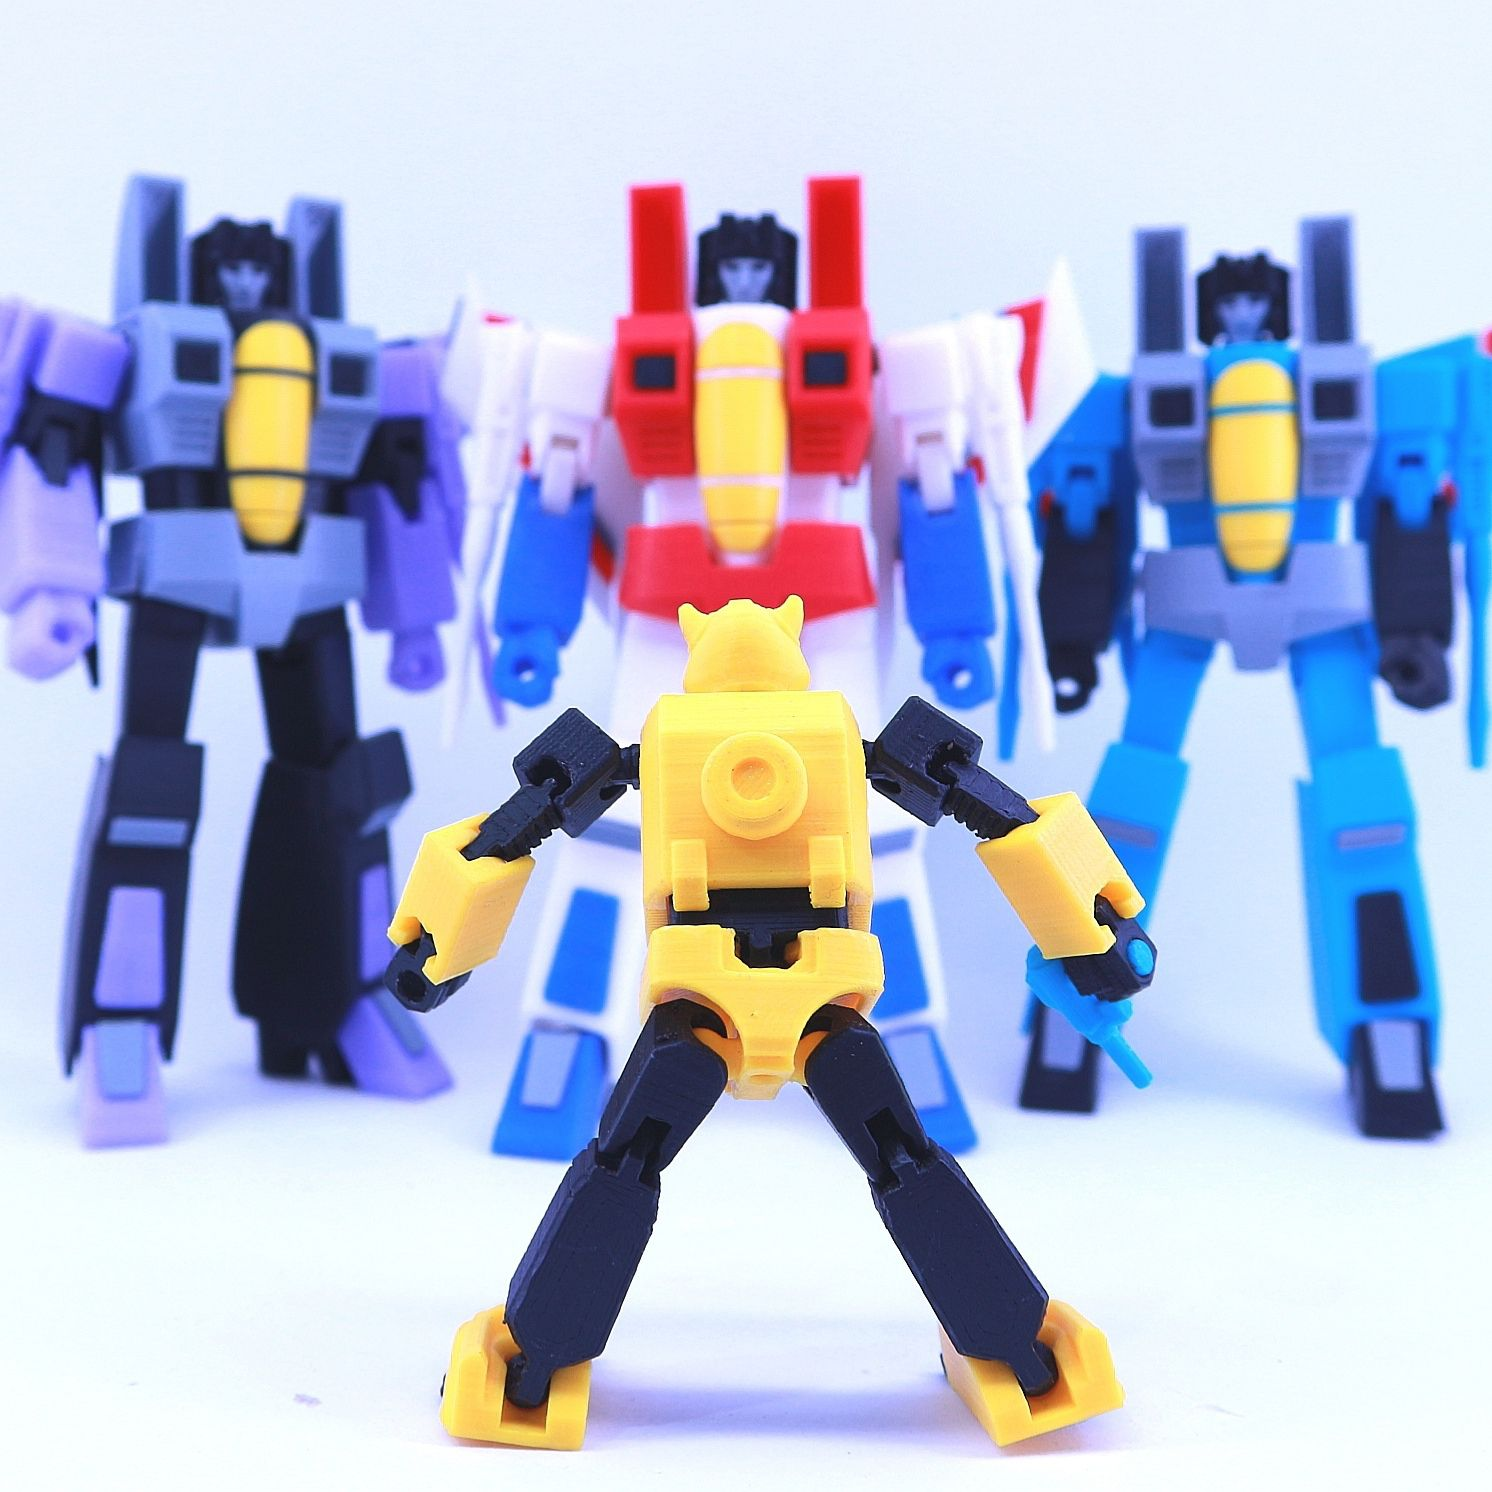 bee9.jpg Download free STL file ARTICULATED G1 TRANSFORMERS BUMBLEBEE - NO SUPPORT • 3D print template, Toymakr3D